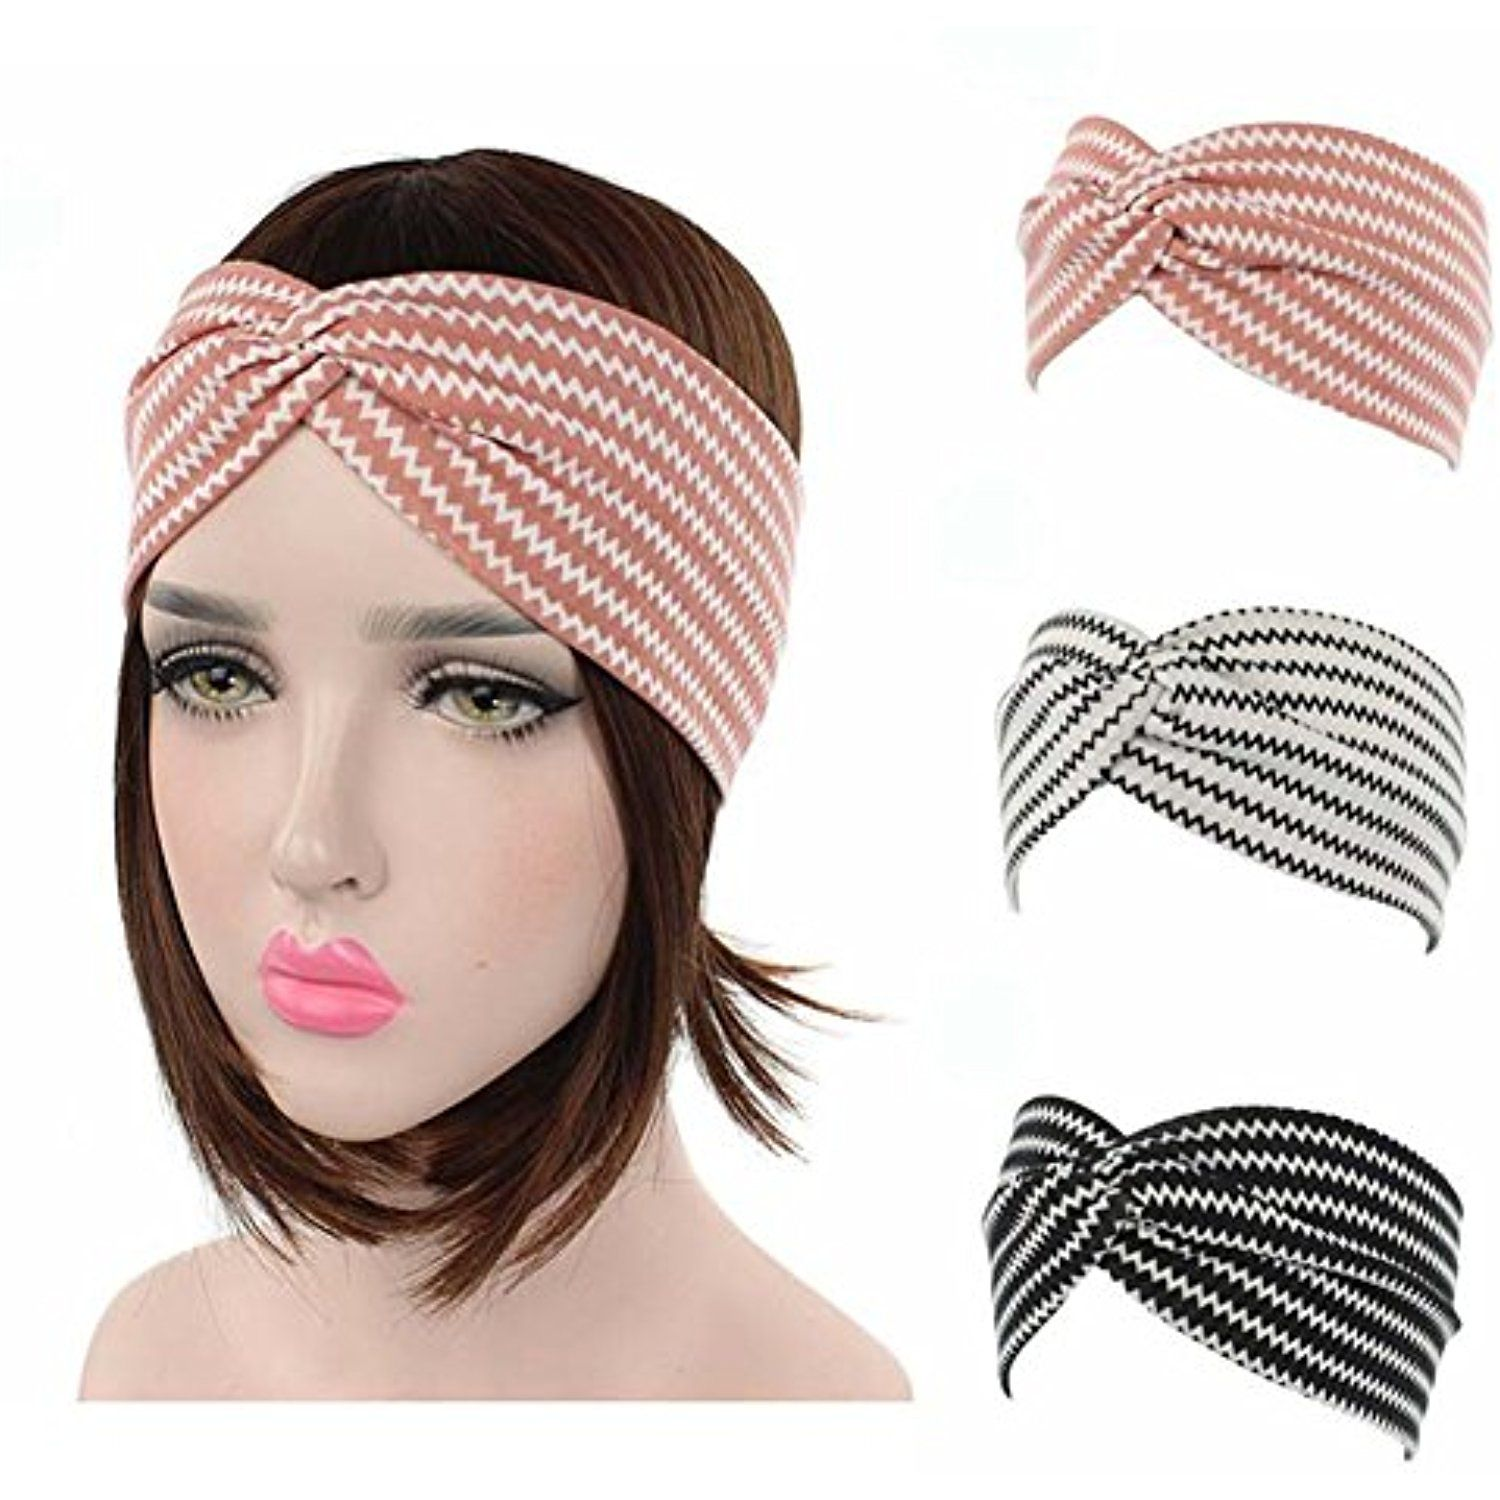 Per-Gull 3PC Headbands Vintage Elastic Head Wrap Stretchy Moisture Hairband  Twisted Cute Hair Accessories for Women     For more information 7bff9ca5e7e